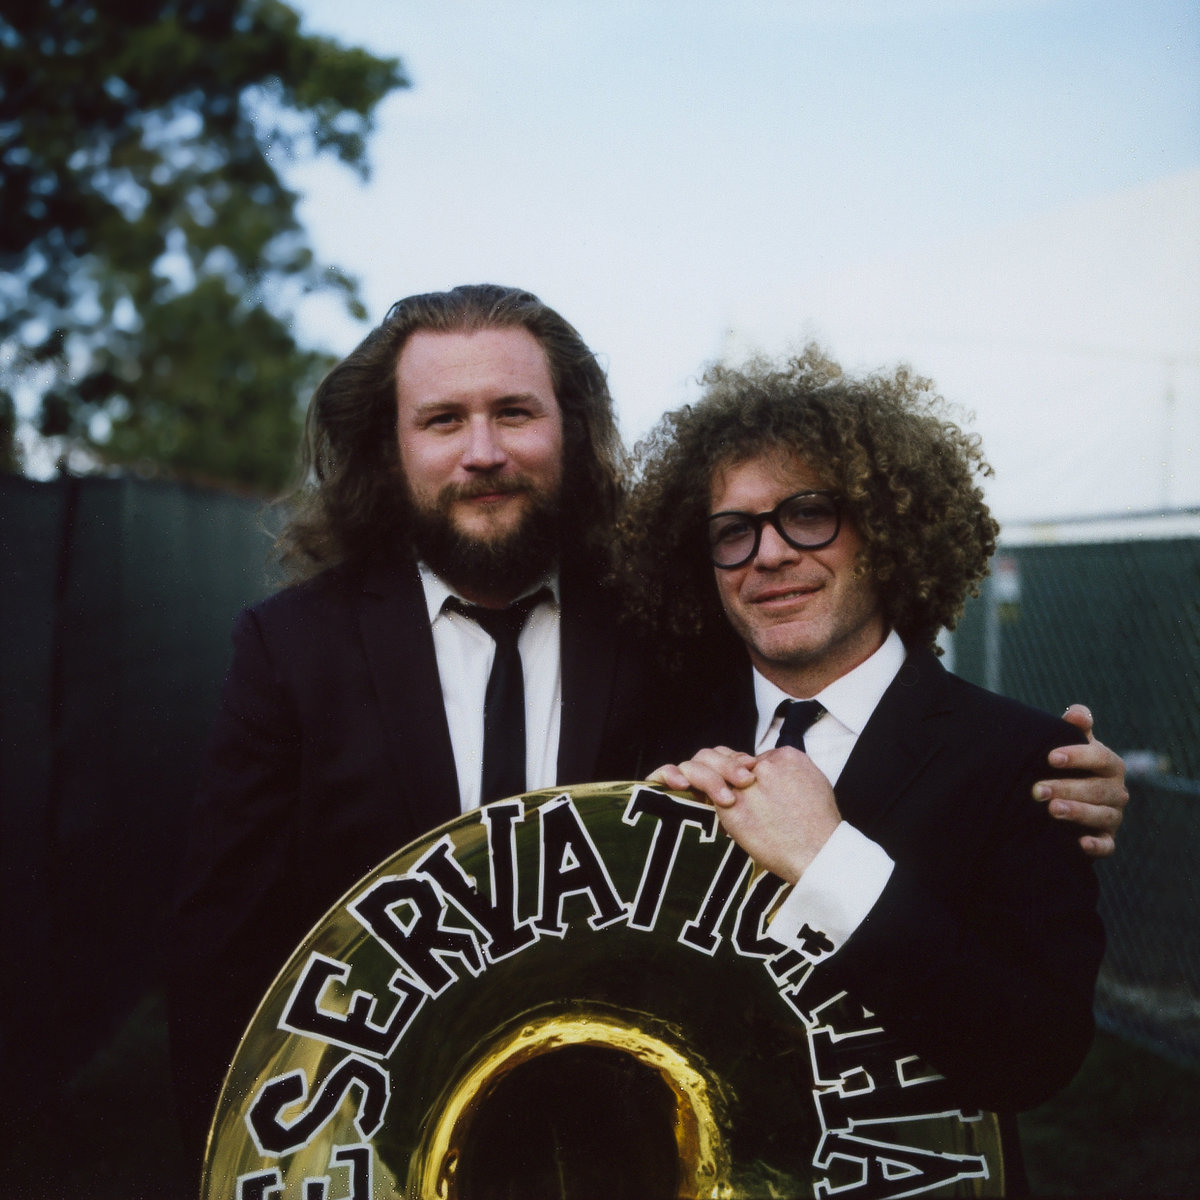 Jim James + Ben Jaffe